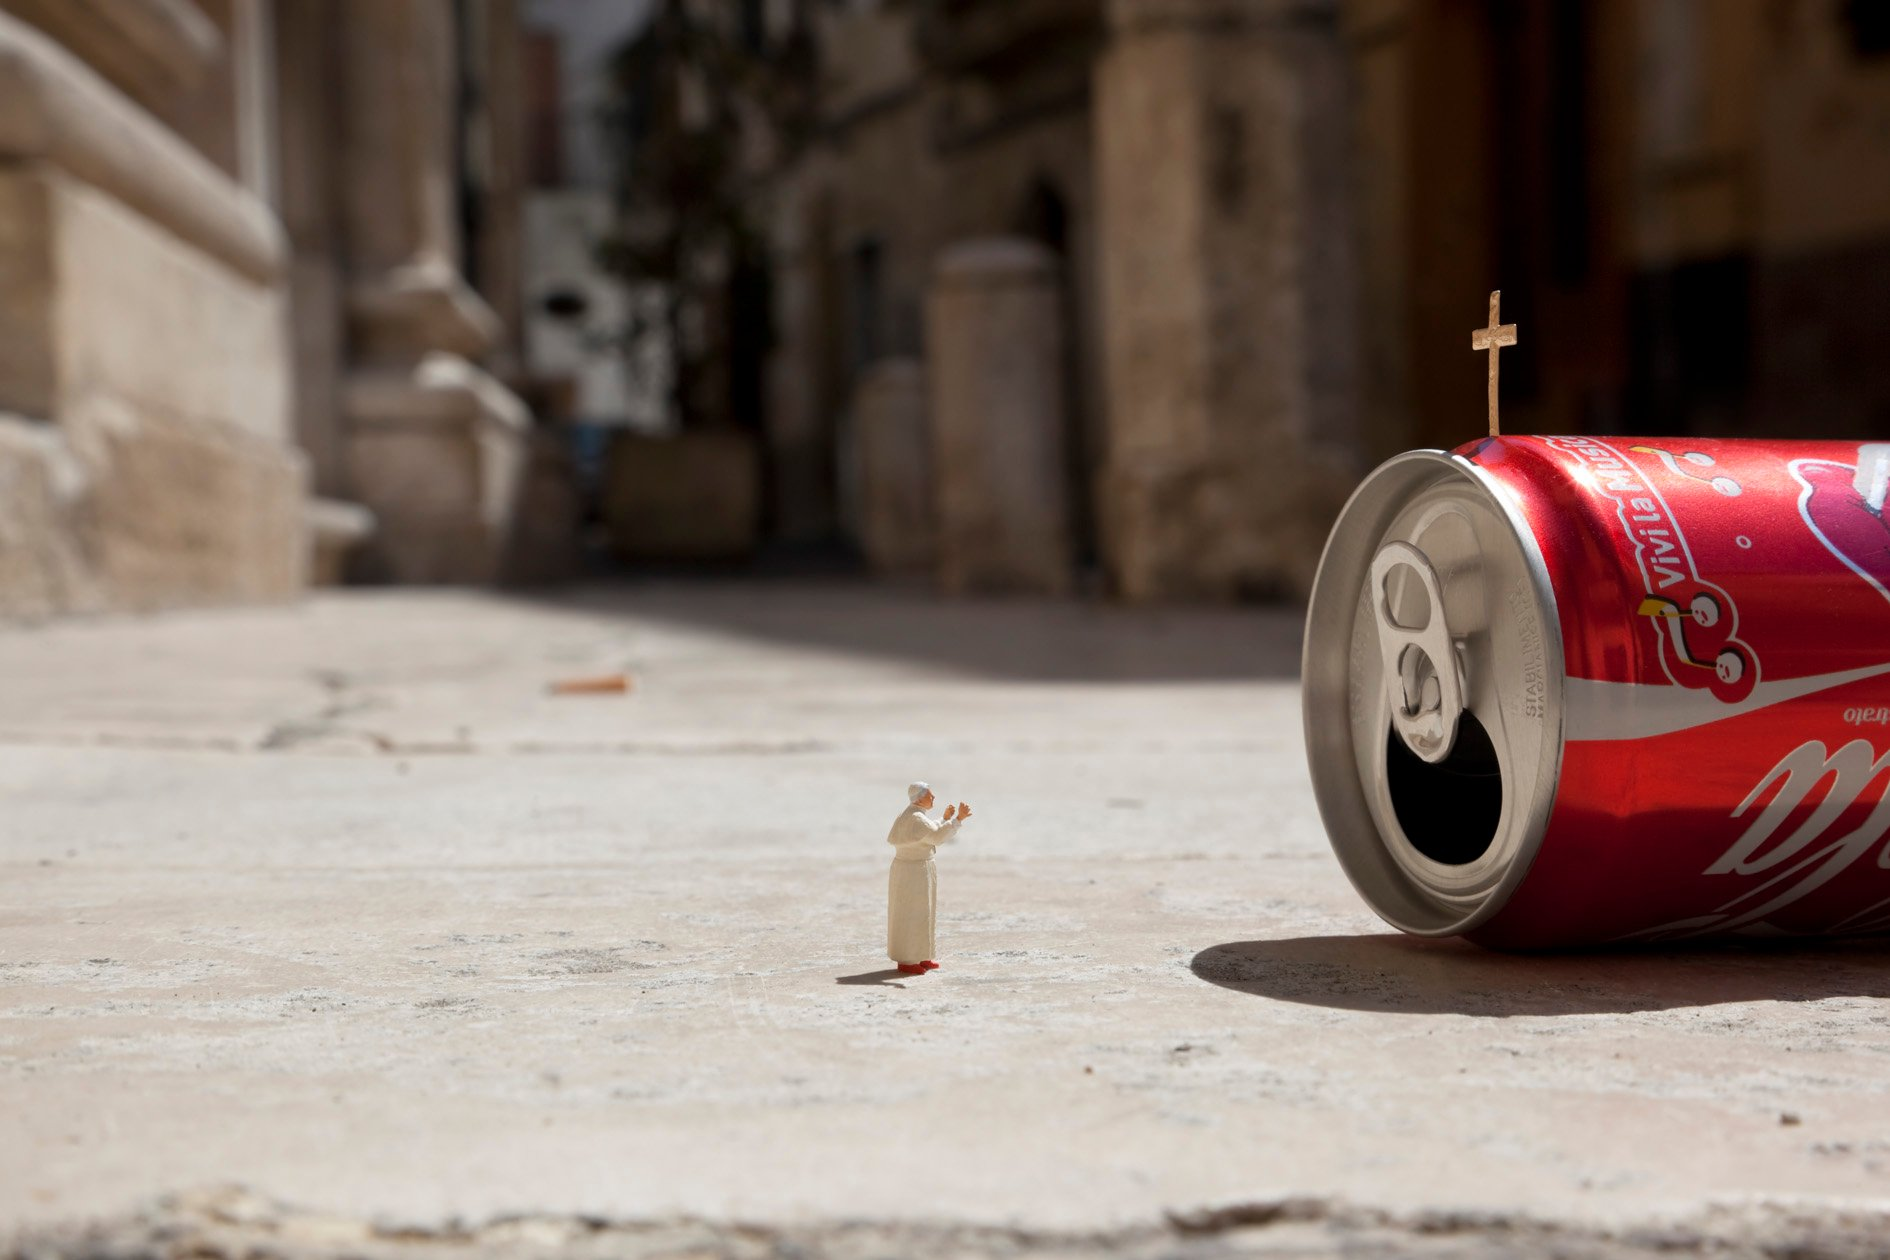 The little people project, la micro street art di Slinkachu | Collater.al 12